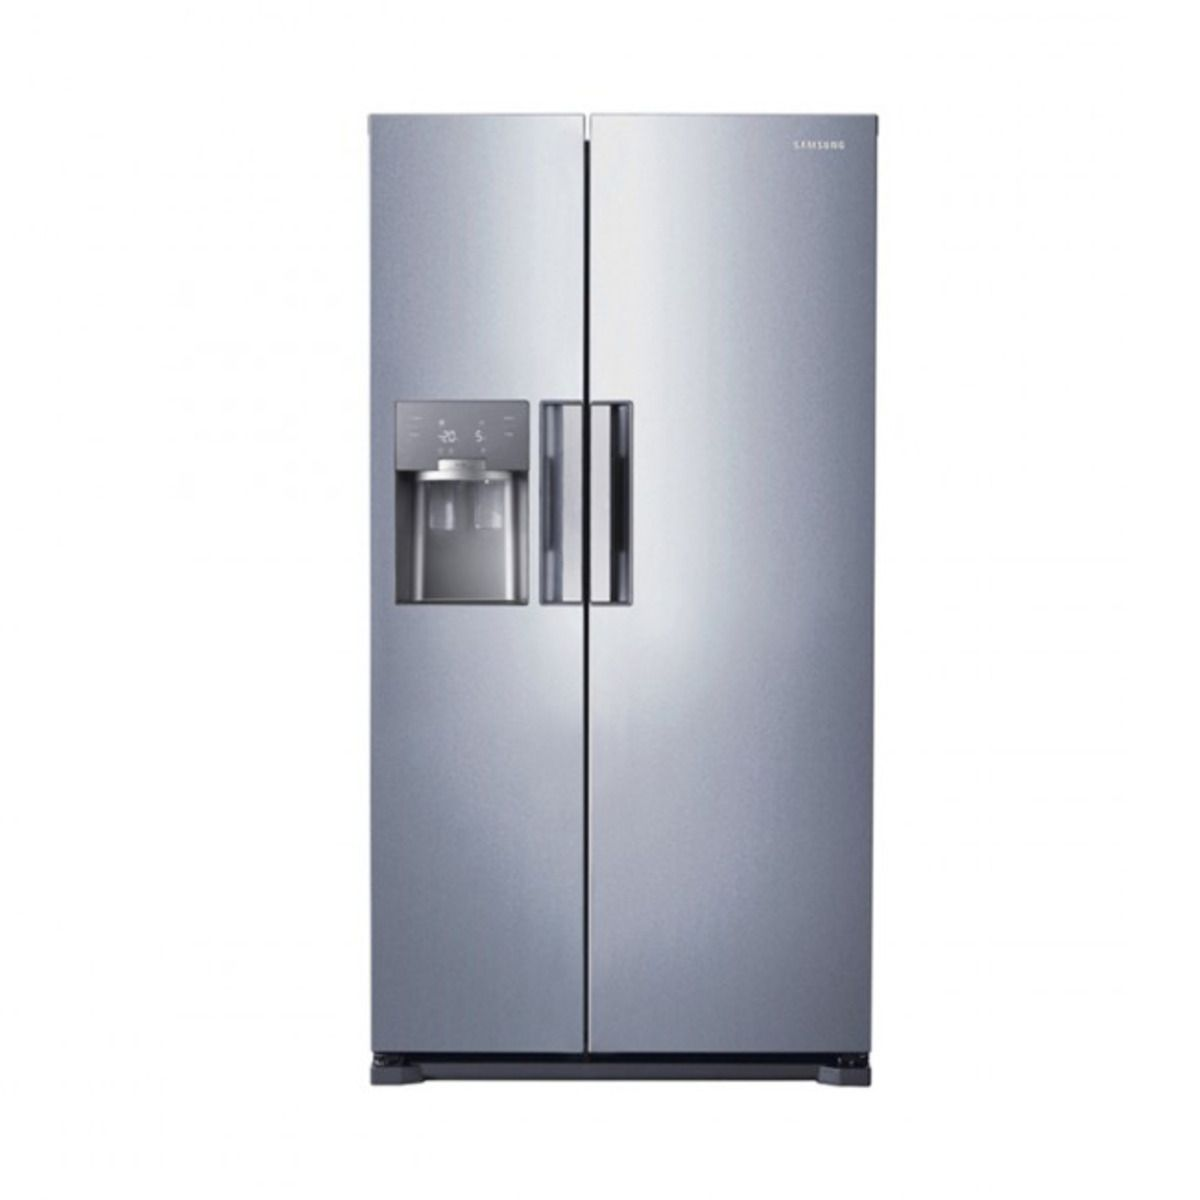 Buy a Samsung RS7667FHCSL American Style Fridge Freezer online at ...